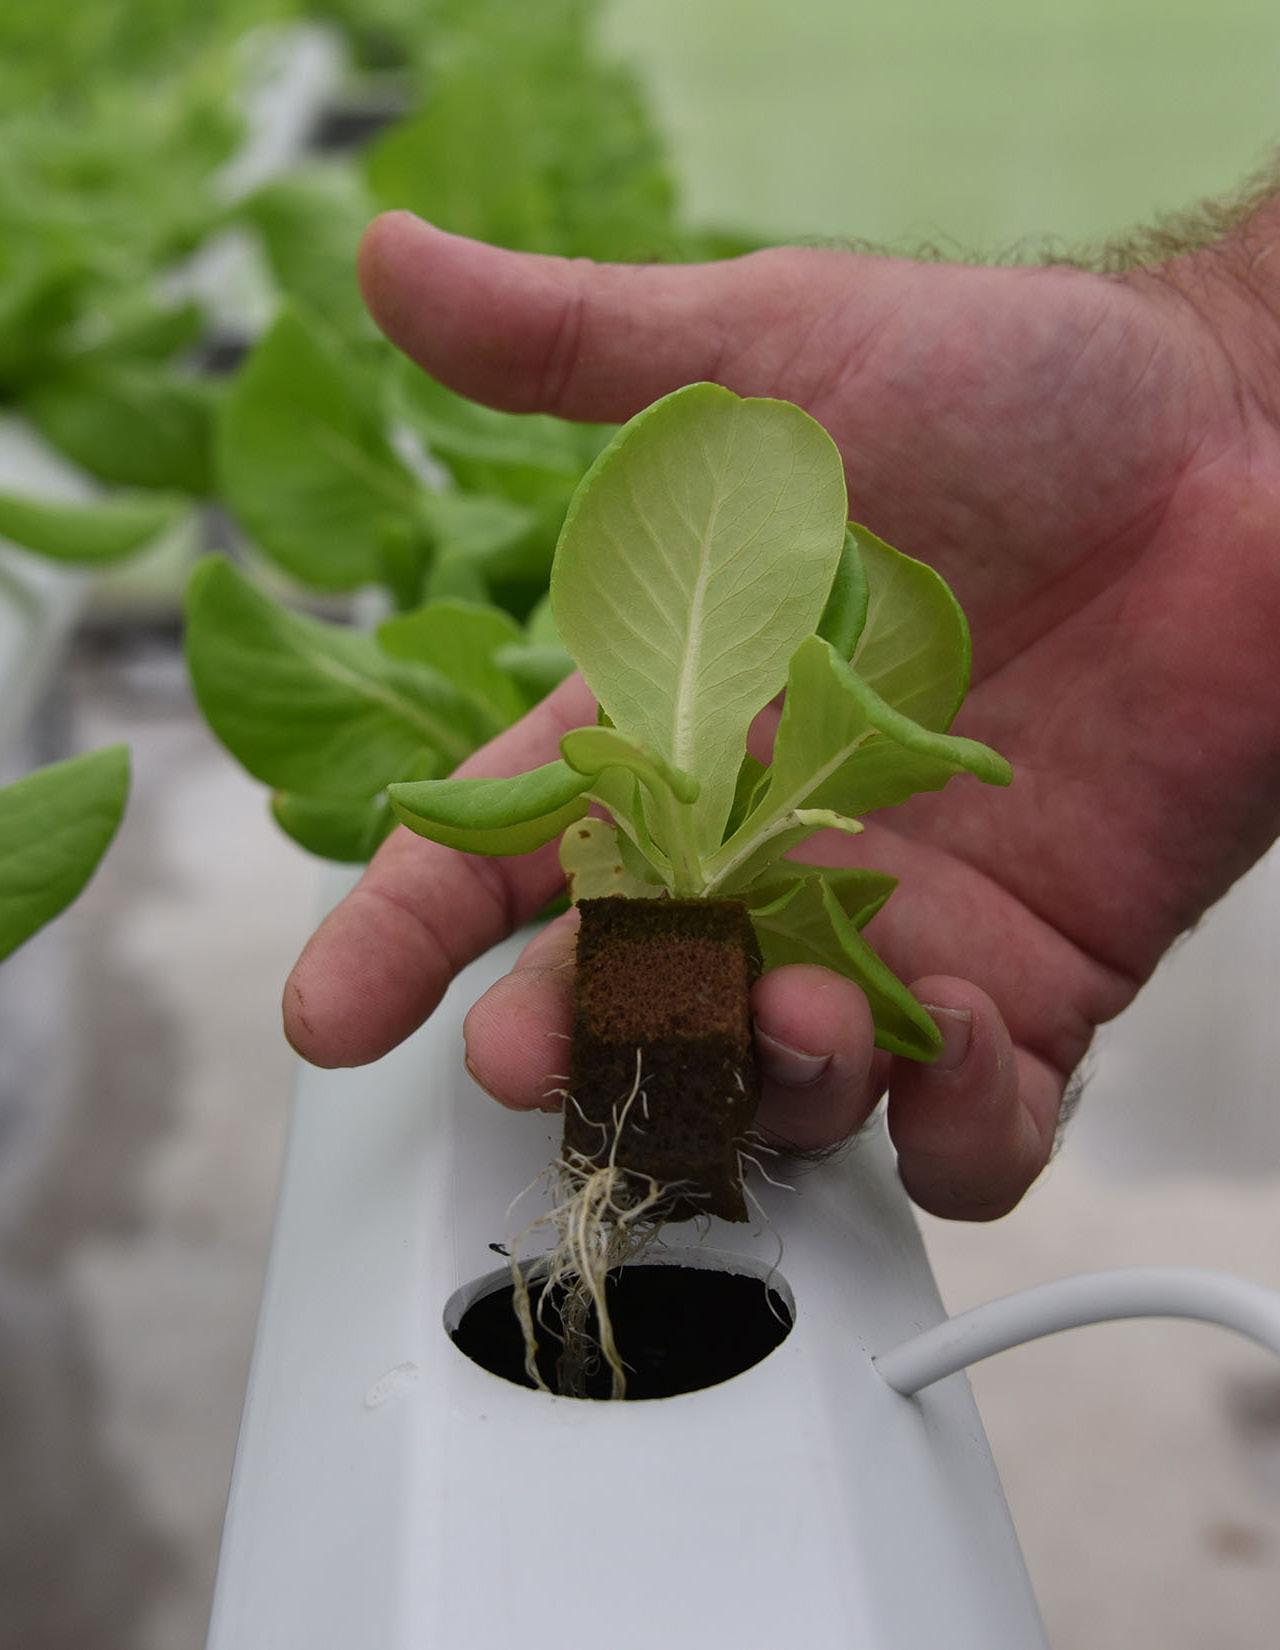 Page 28 of Hydroponics: Does it have a place in sustainable food systems?